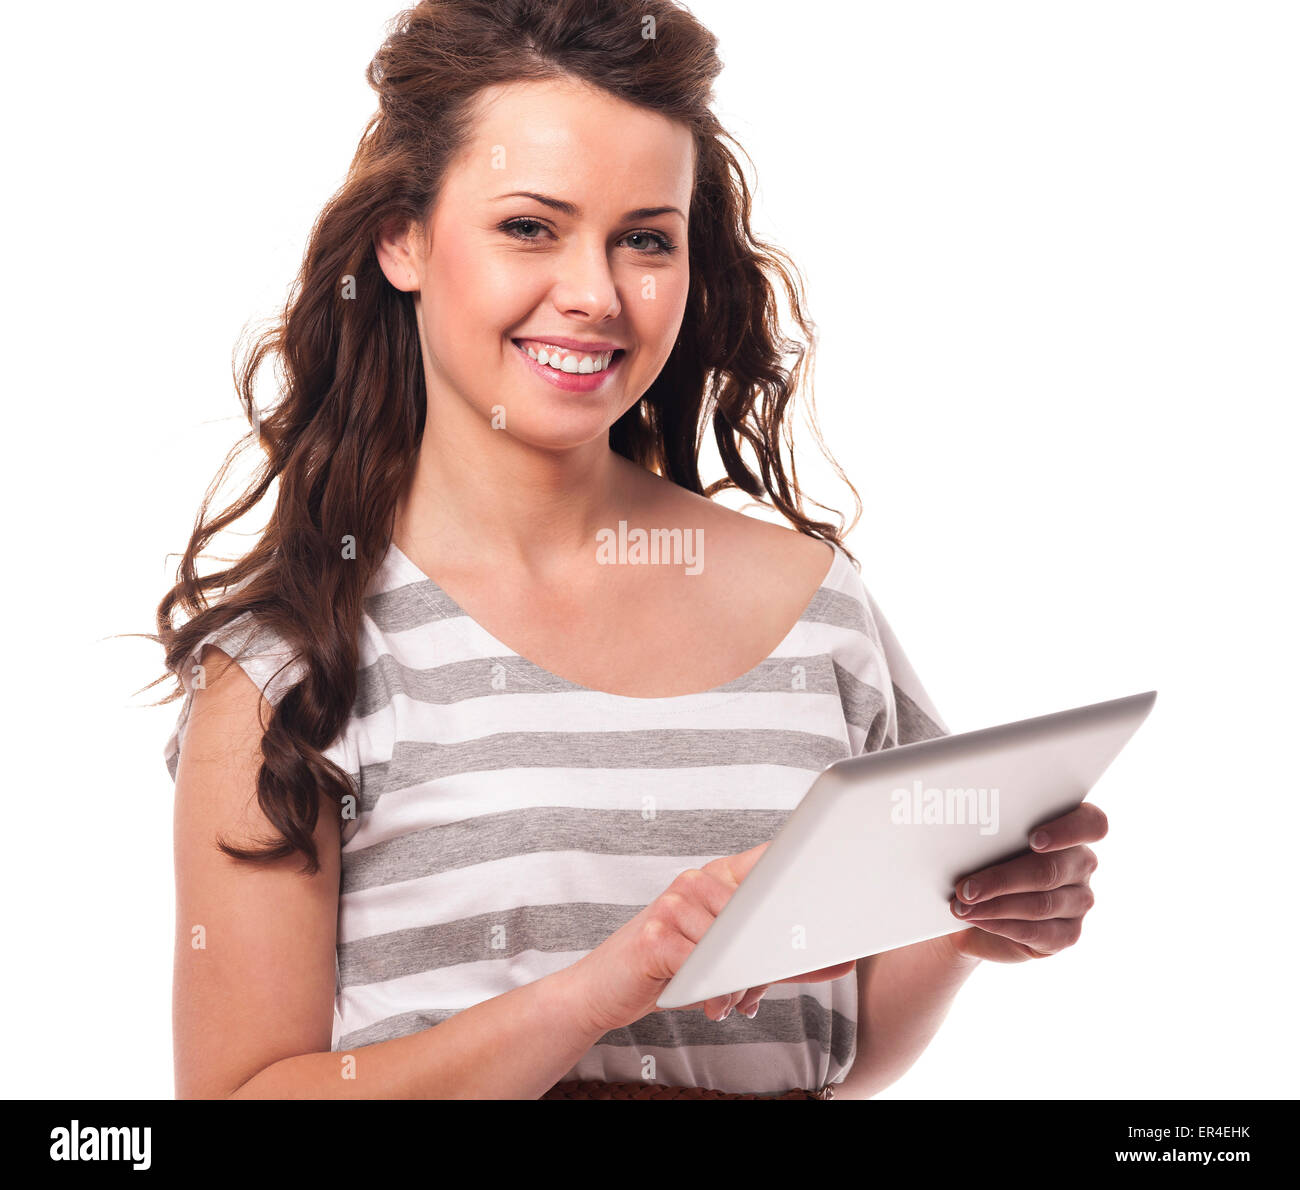 Young model with a digital tablet - Stock Image